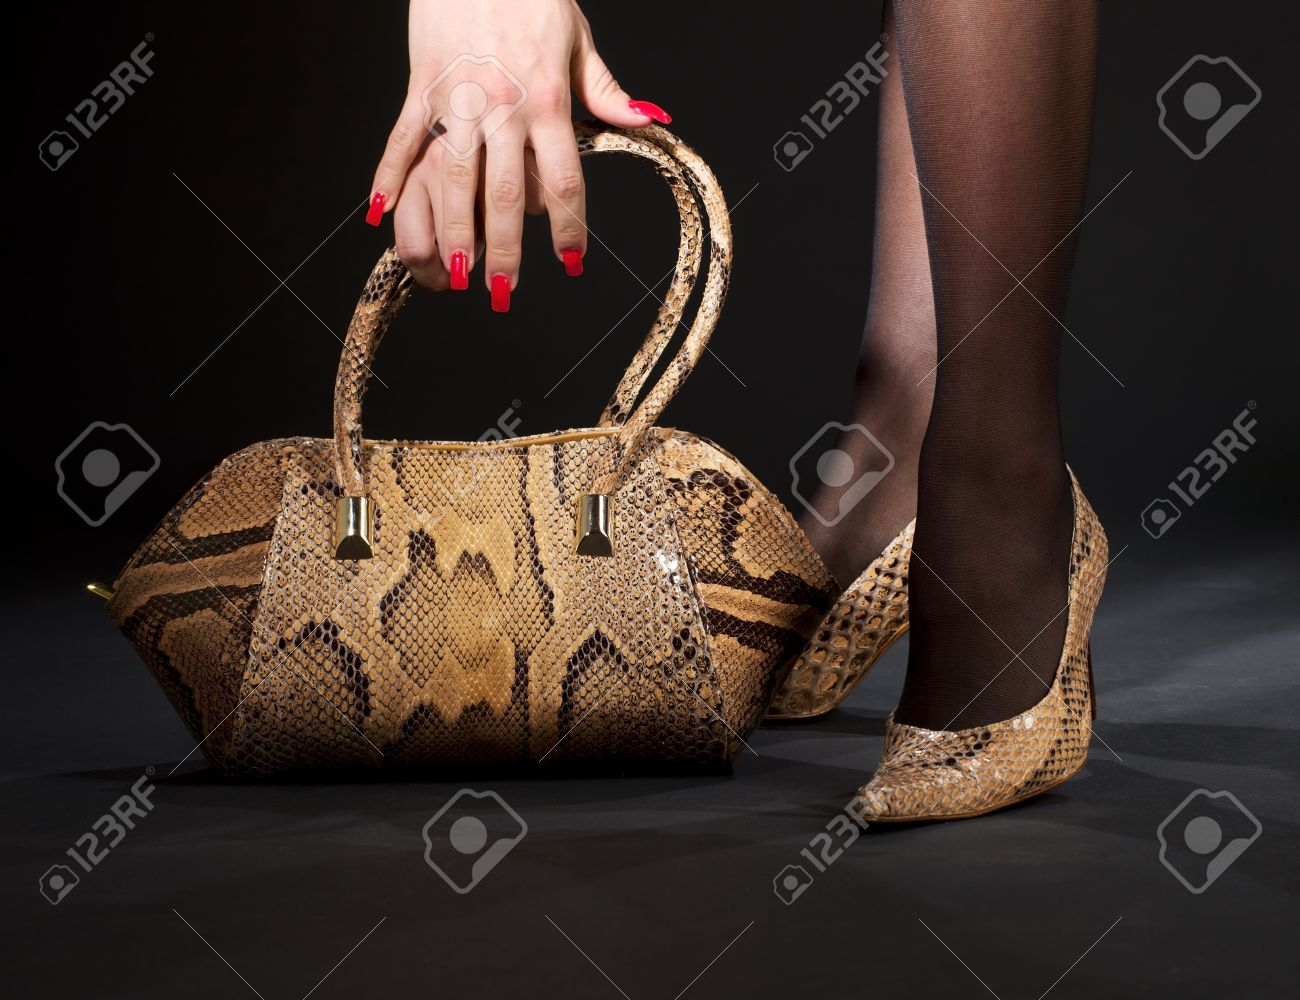 long legs in snakeskin shoes with handbag over black Stock Photo - 5197193